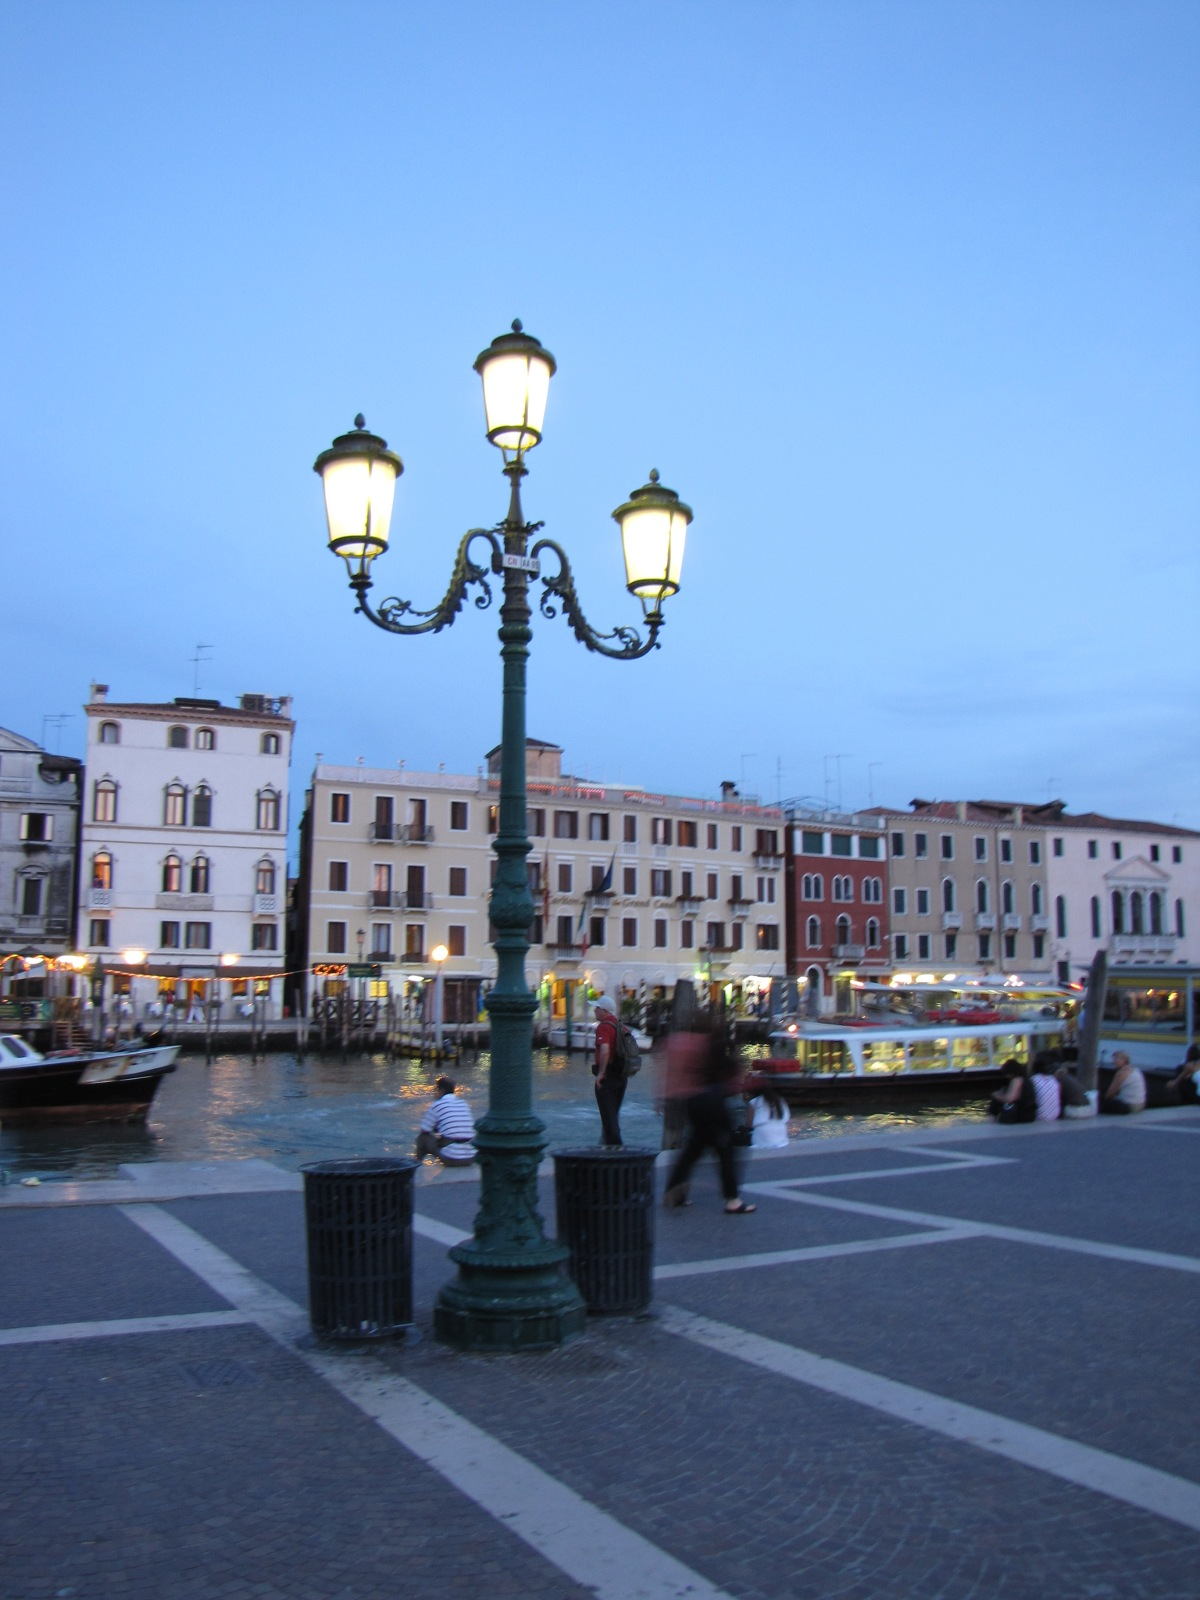 Venice: Last photograph before boarding the train